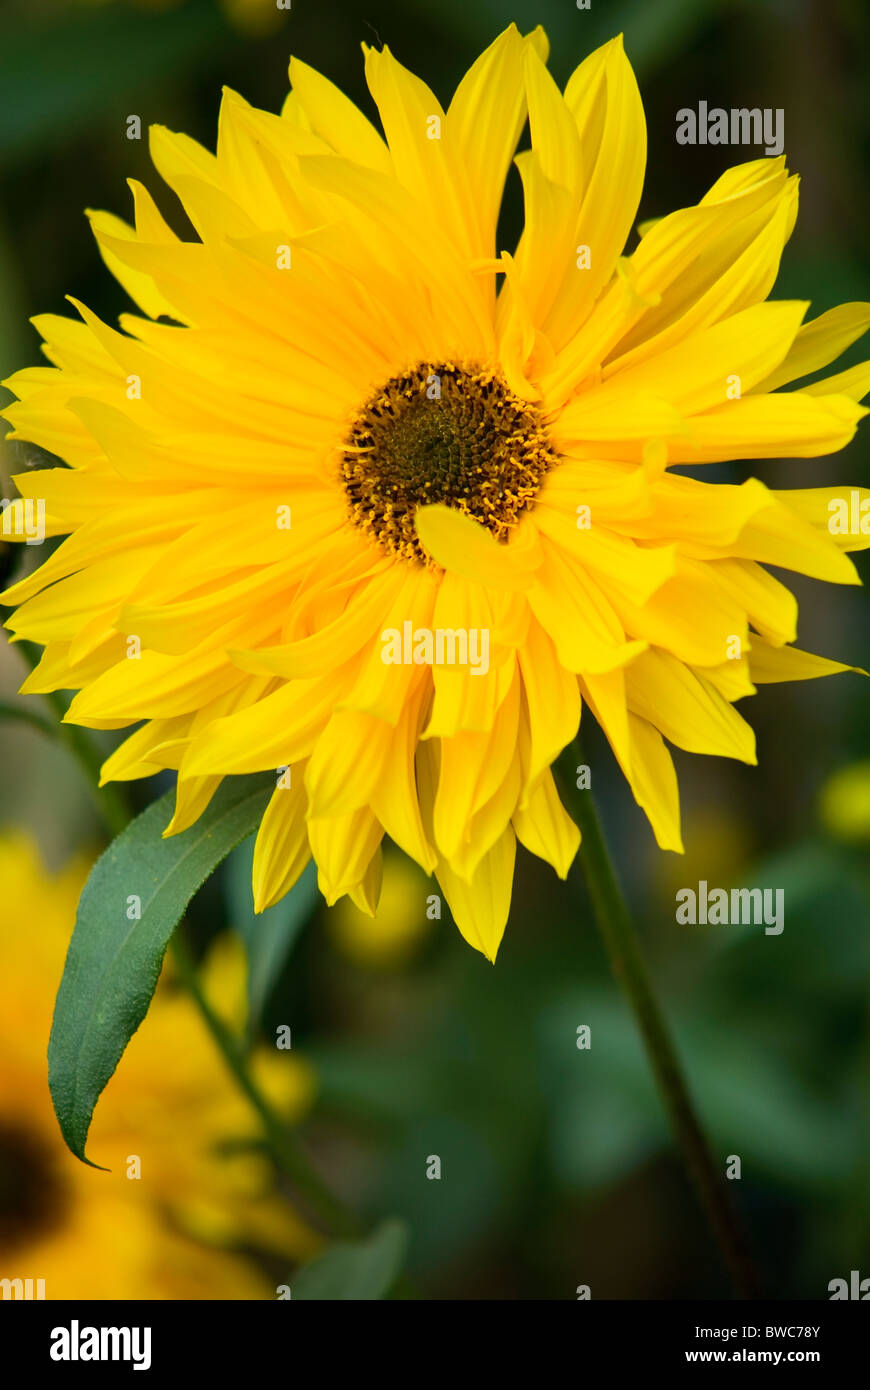 HELIANTHUS MONARCH SUNFLOWER - Stock Image